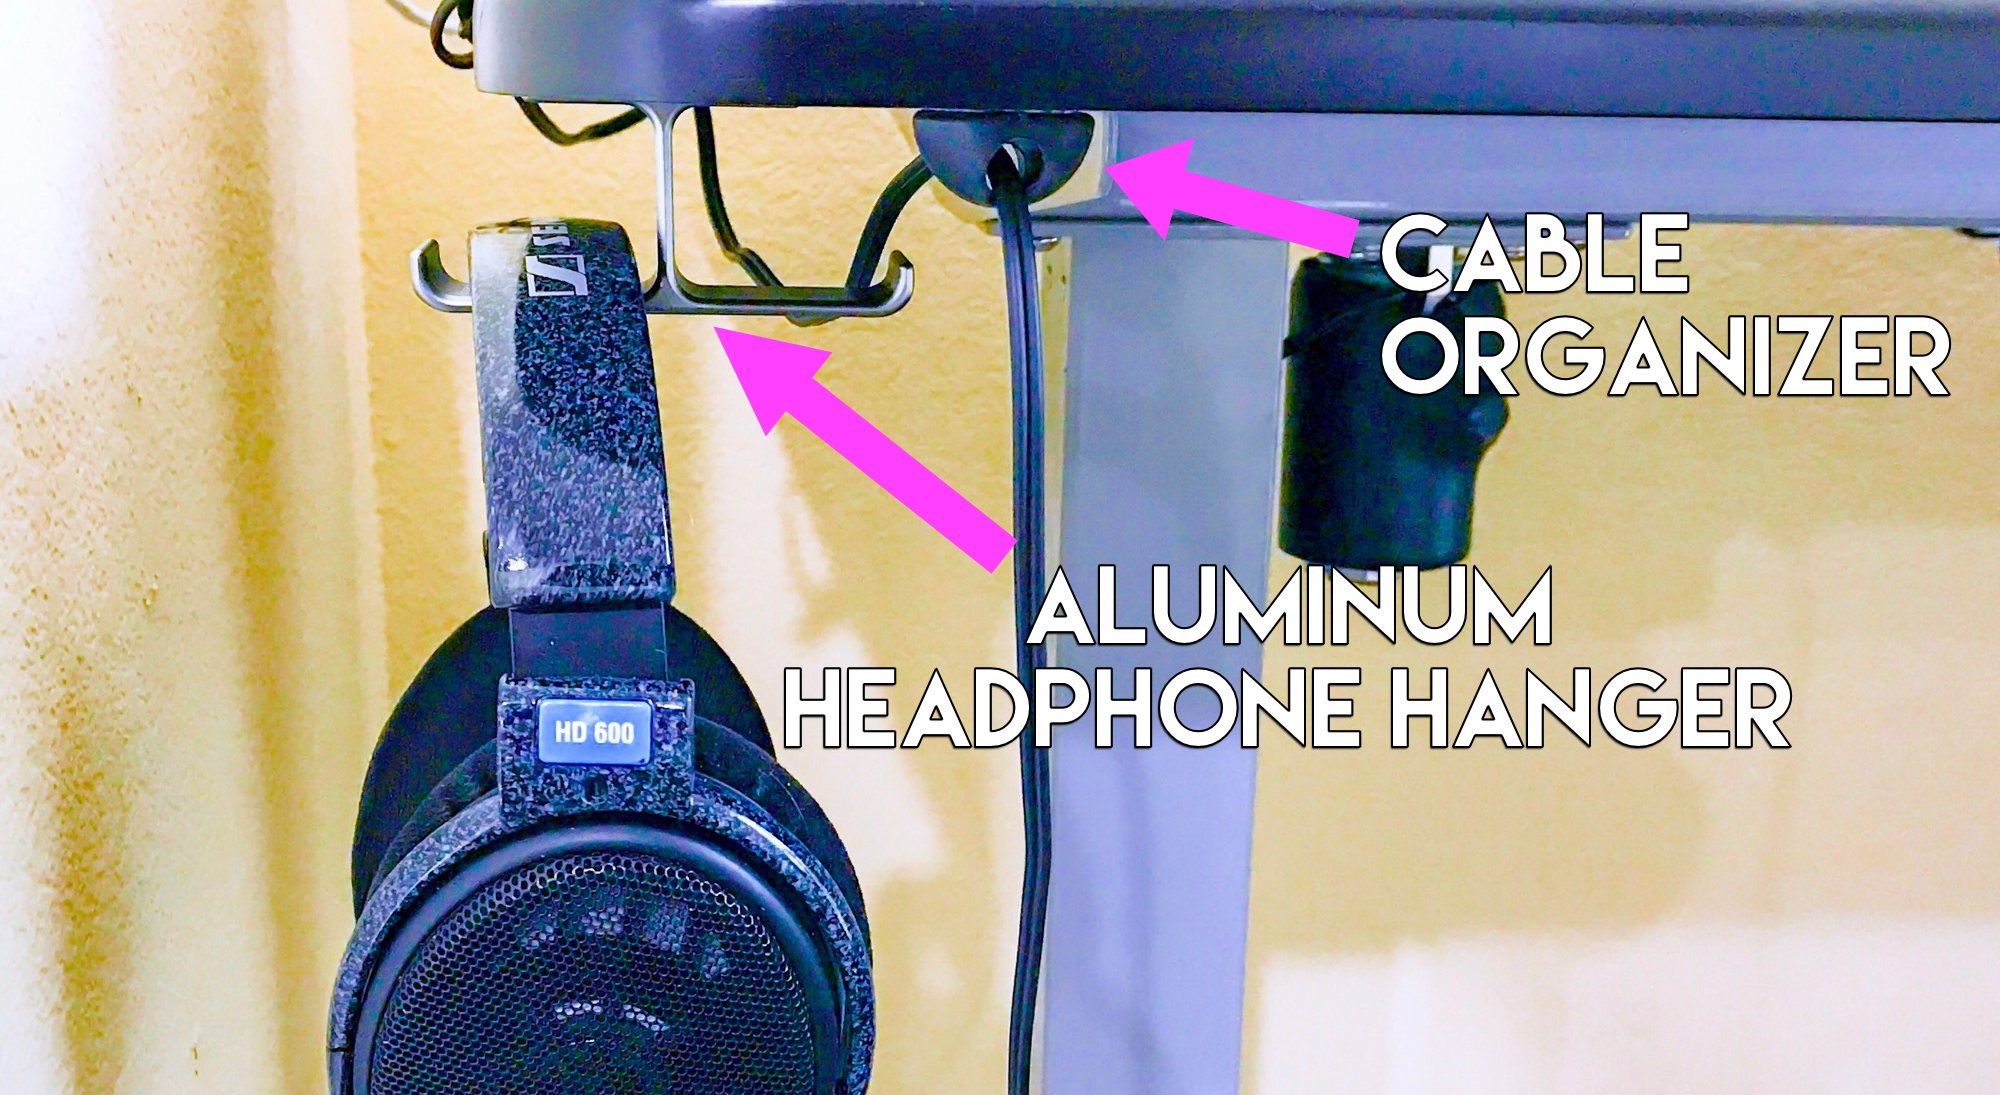 Aluminum Headphone Desk Hanger - Organize My Desk